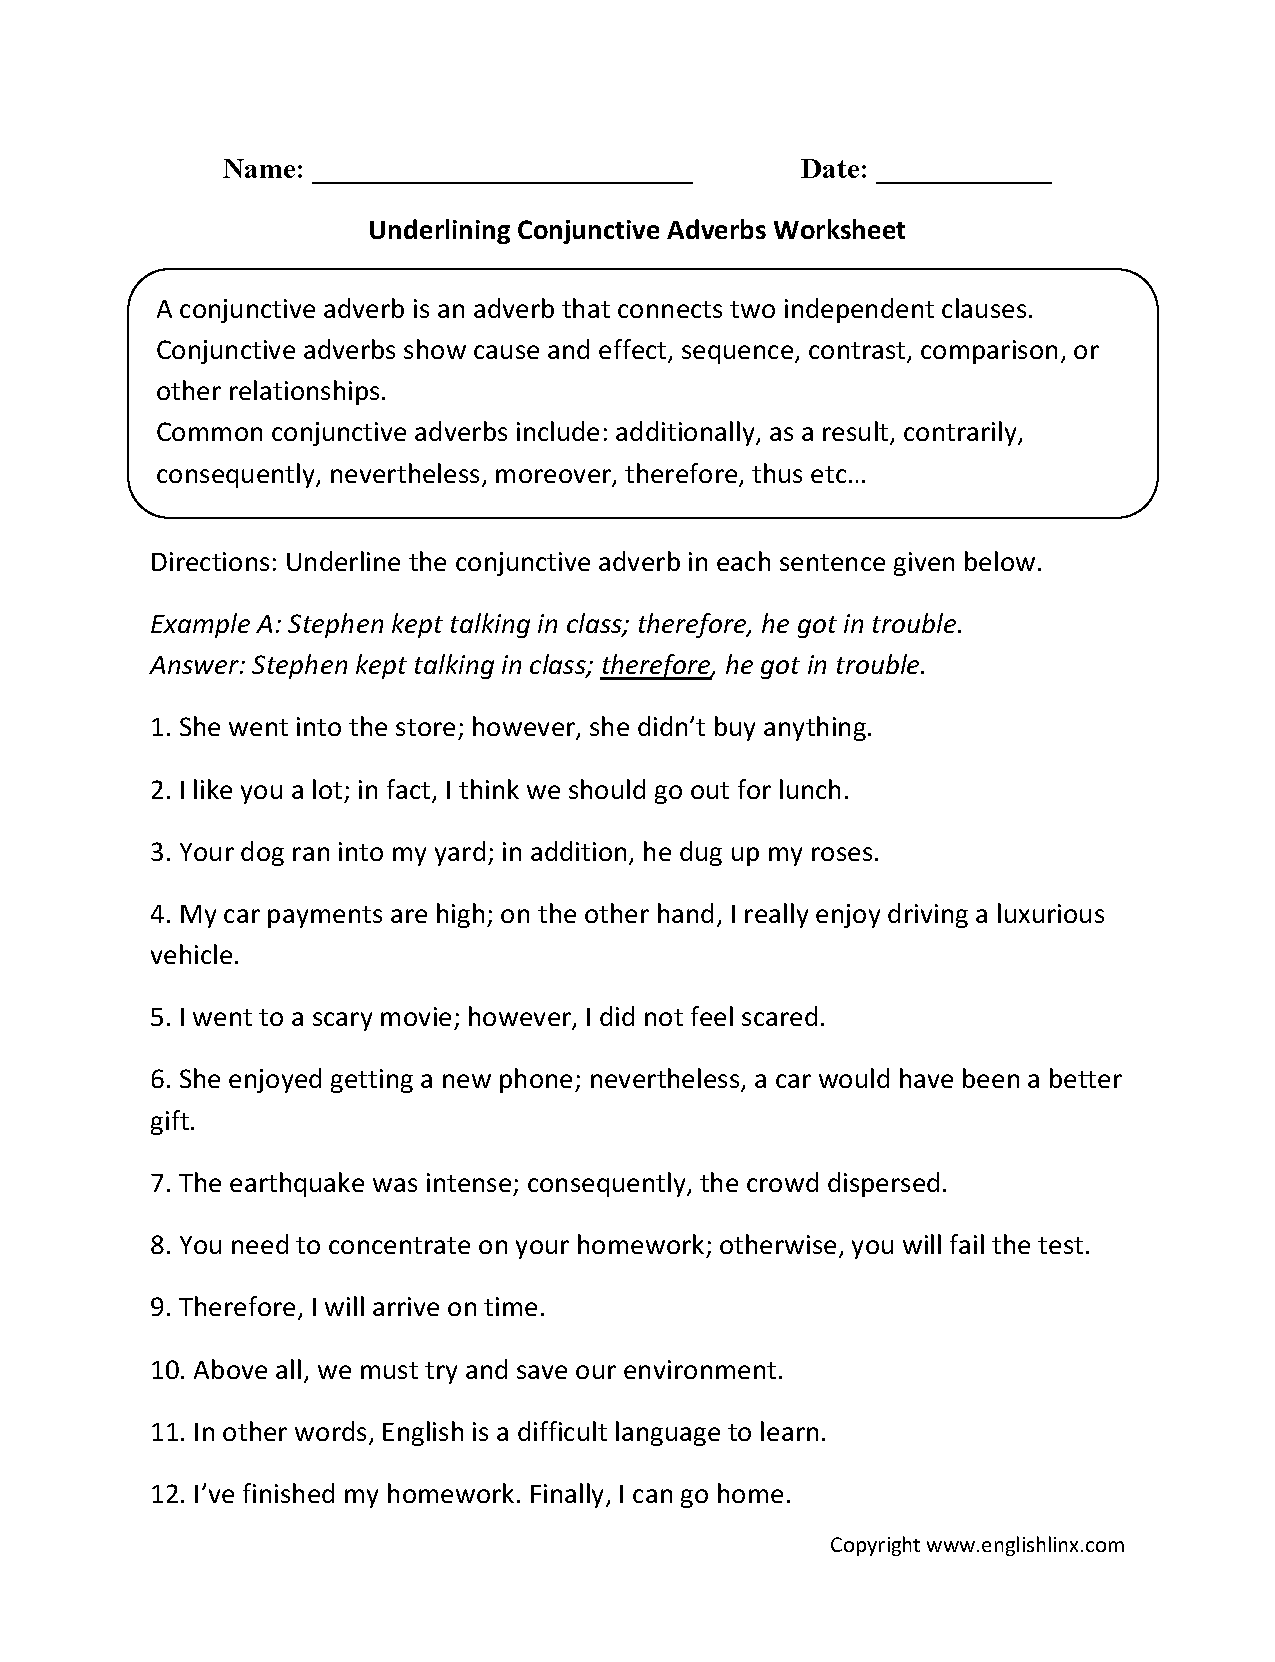 Proatmealus  Scenic Englishlinxcom  Conjunctions Worksheets With Inspiring Worksheet With Amazing Note Names Worksheet Also News  You Worksheets In Addition Multiplication Coloring Worksheet And Summer Worksheet As Well As Multiplication Fact Practice Worksheet Additionally Transformation Of Energy Worksheet From Englishlinxcom With Proatmealus  Inspiring Englishlinxcom  Conjunctions Worksheets With Amazing Worksheet And Scenic Note Names Worksheet Also News  You Worksheets In Addition Multiplication Coloring Worksheet From Englishlinxcom